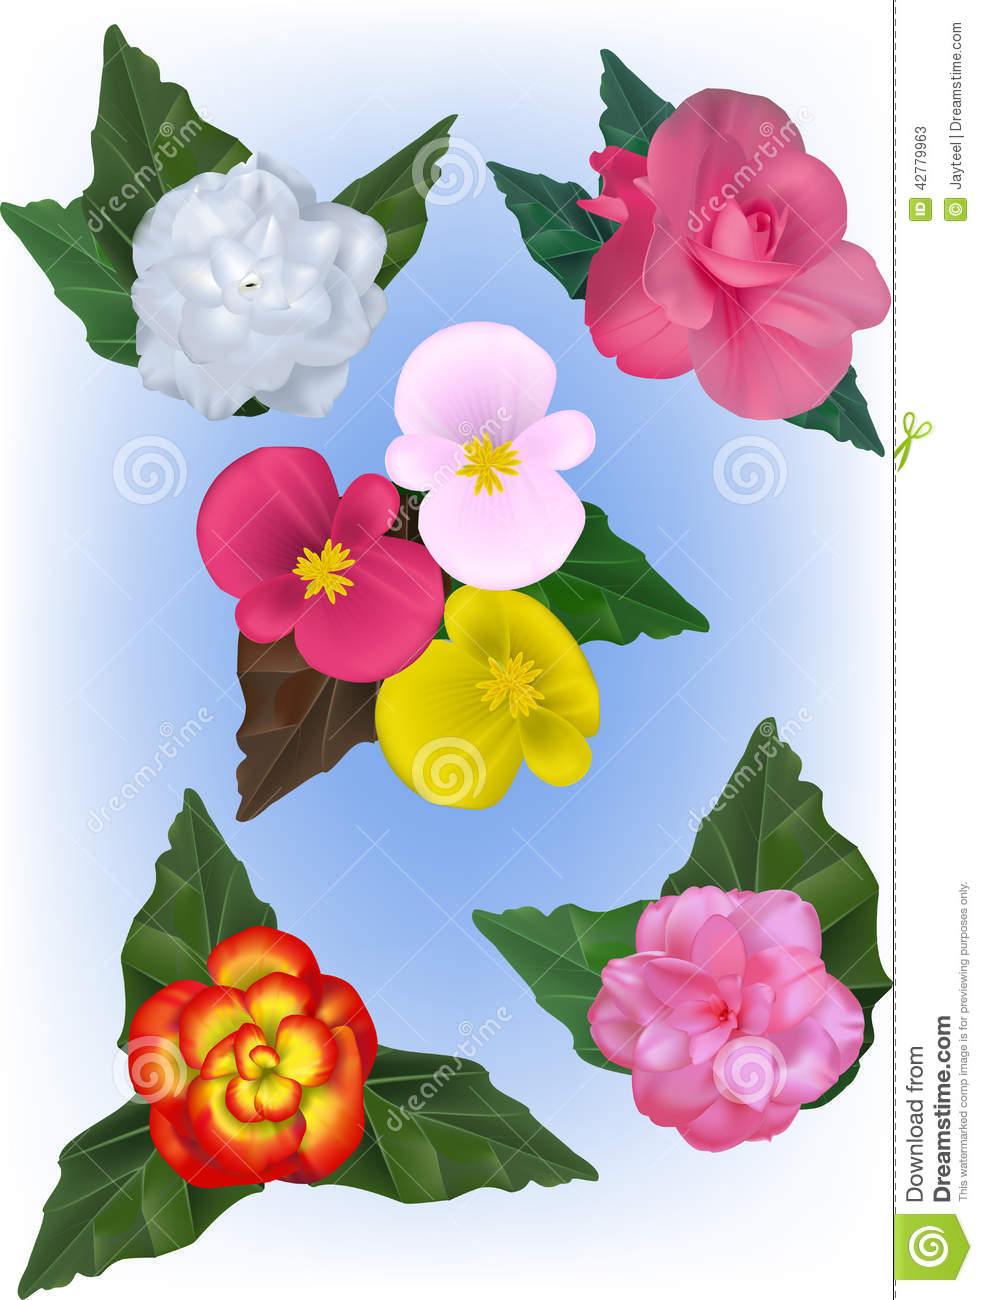 A Collection Of Begonia Flower Vector Illustrations Stock Vector.